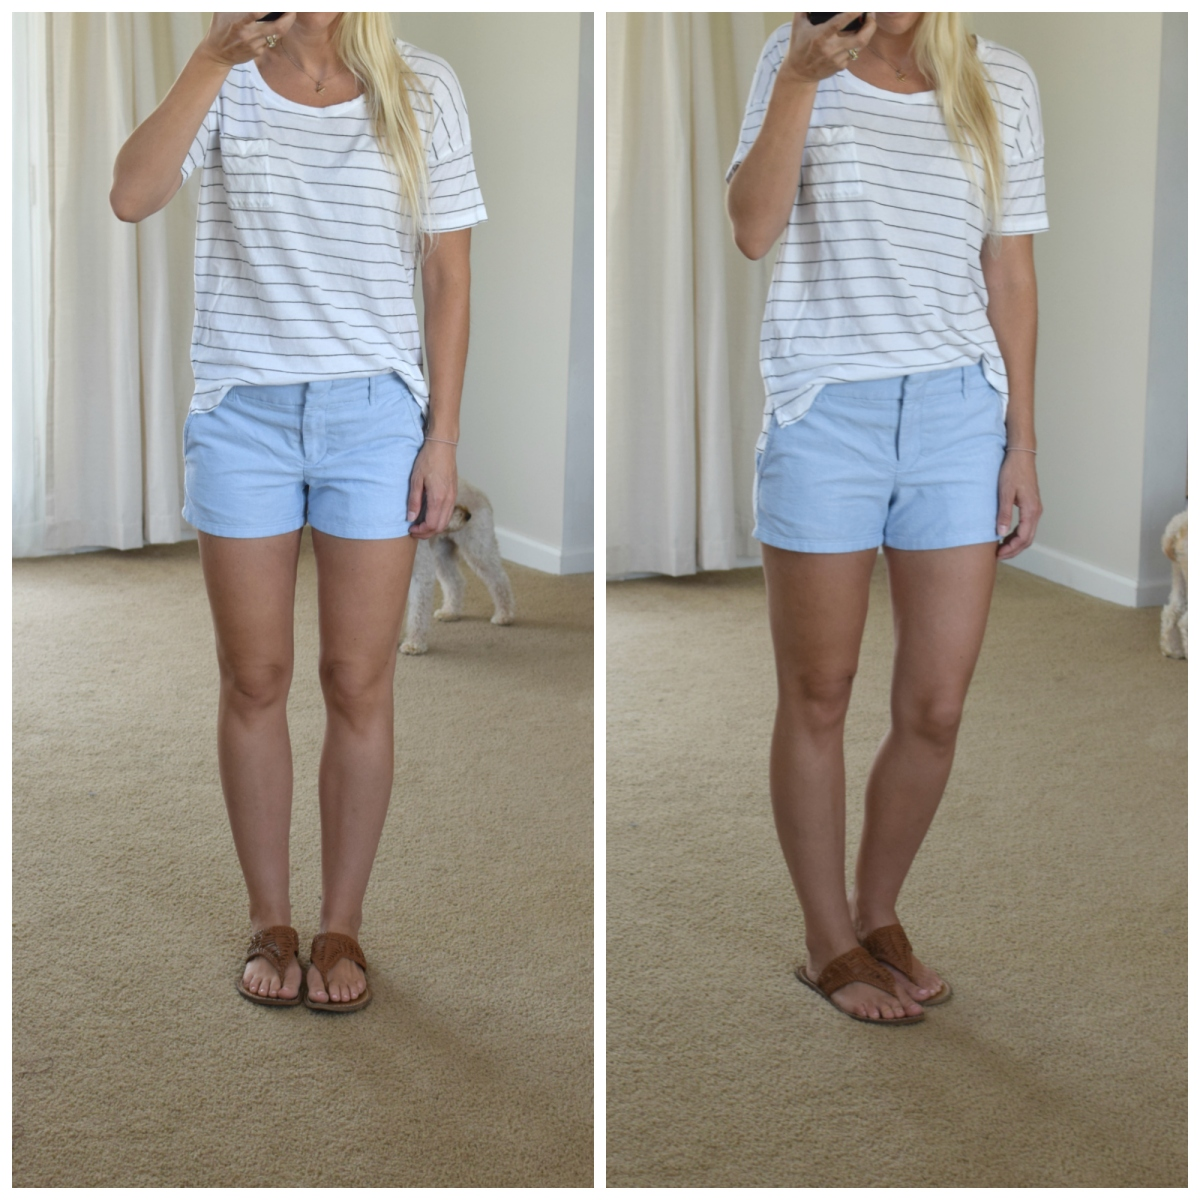 Simple striped tee and shorts | www.pearlsandsportsbras.com |